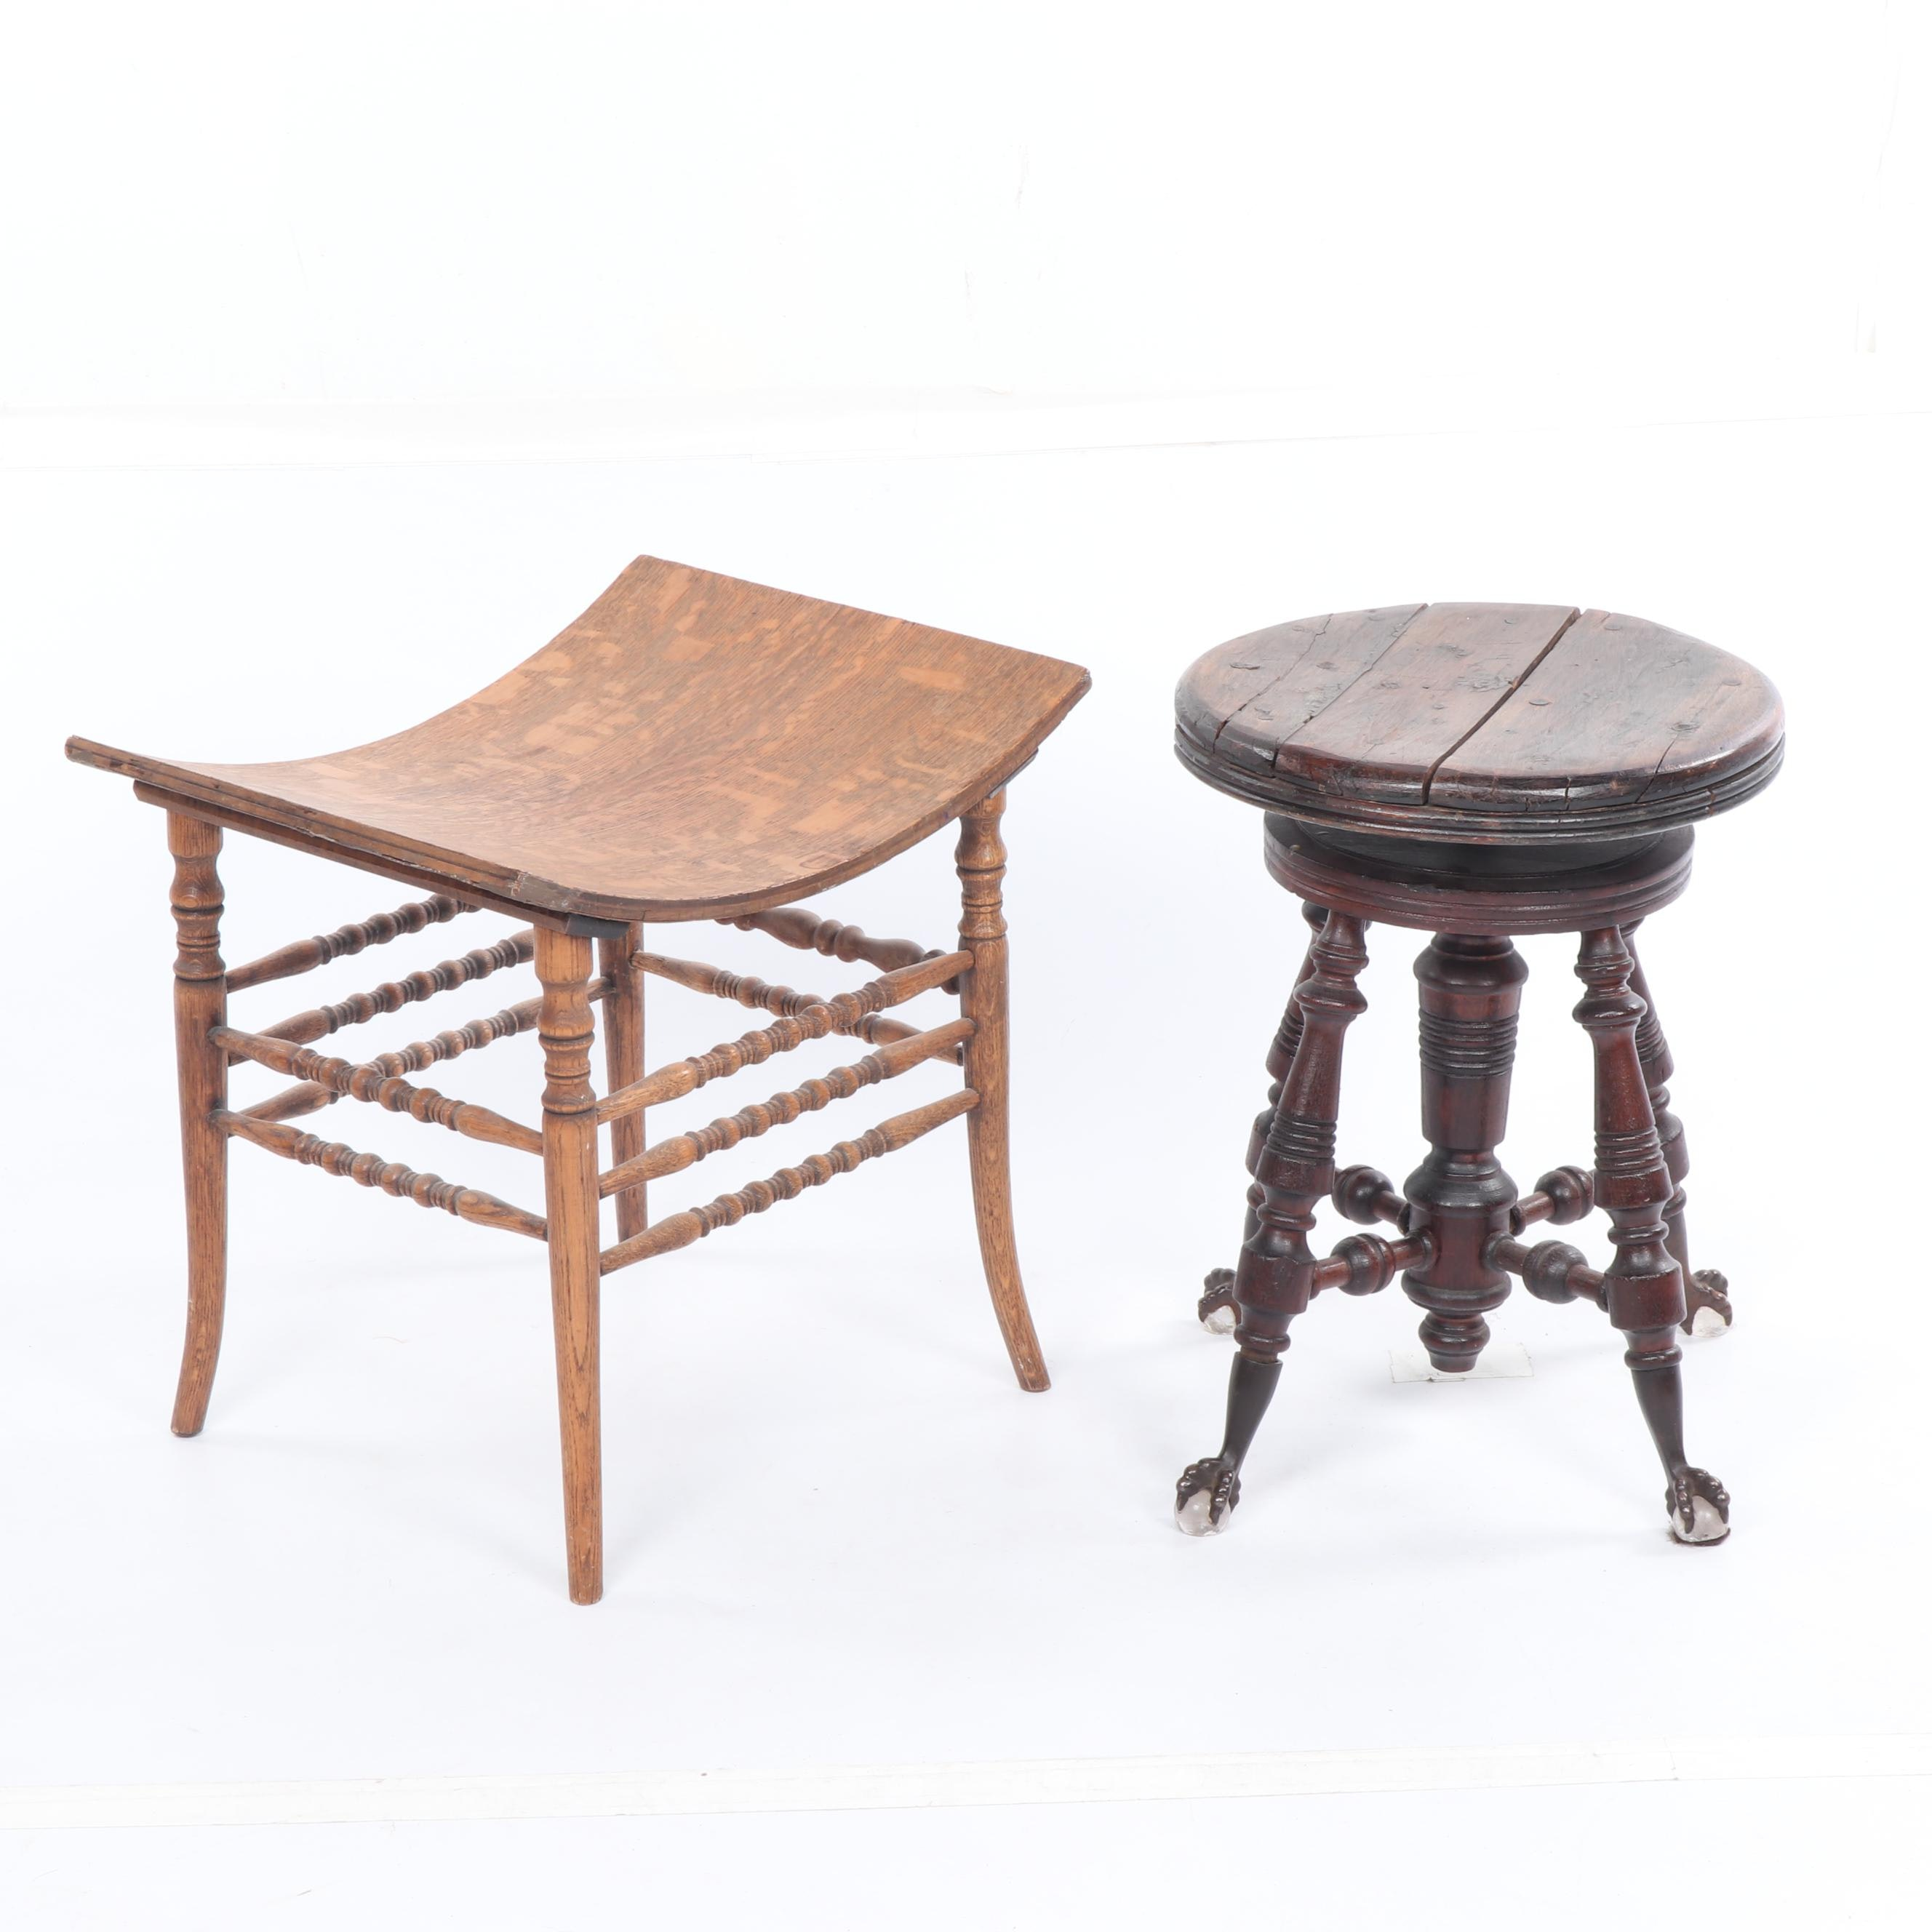 Quartersawn Oak Stool and Late Victorian Style Piano Stool, Early 20th Century